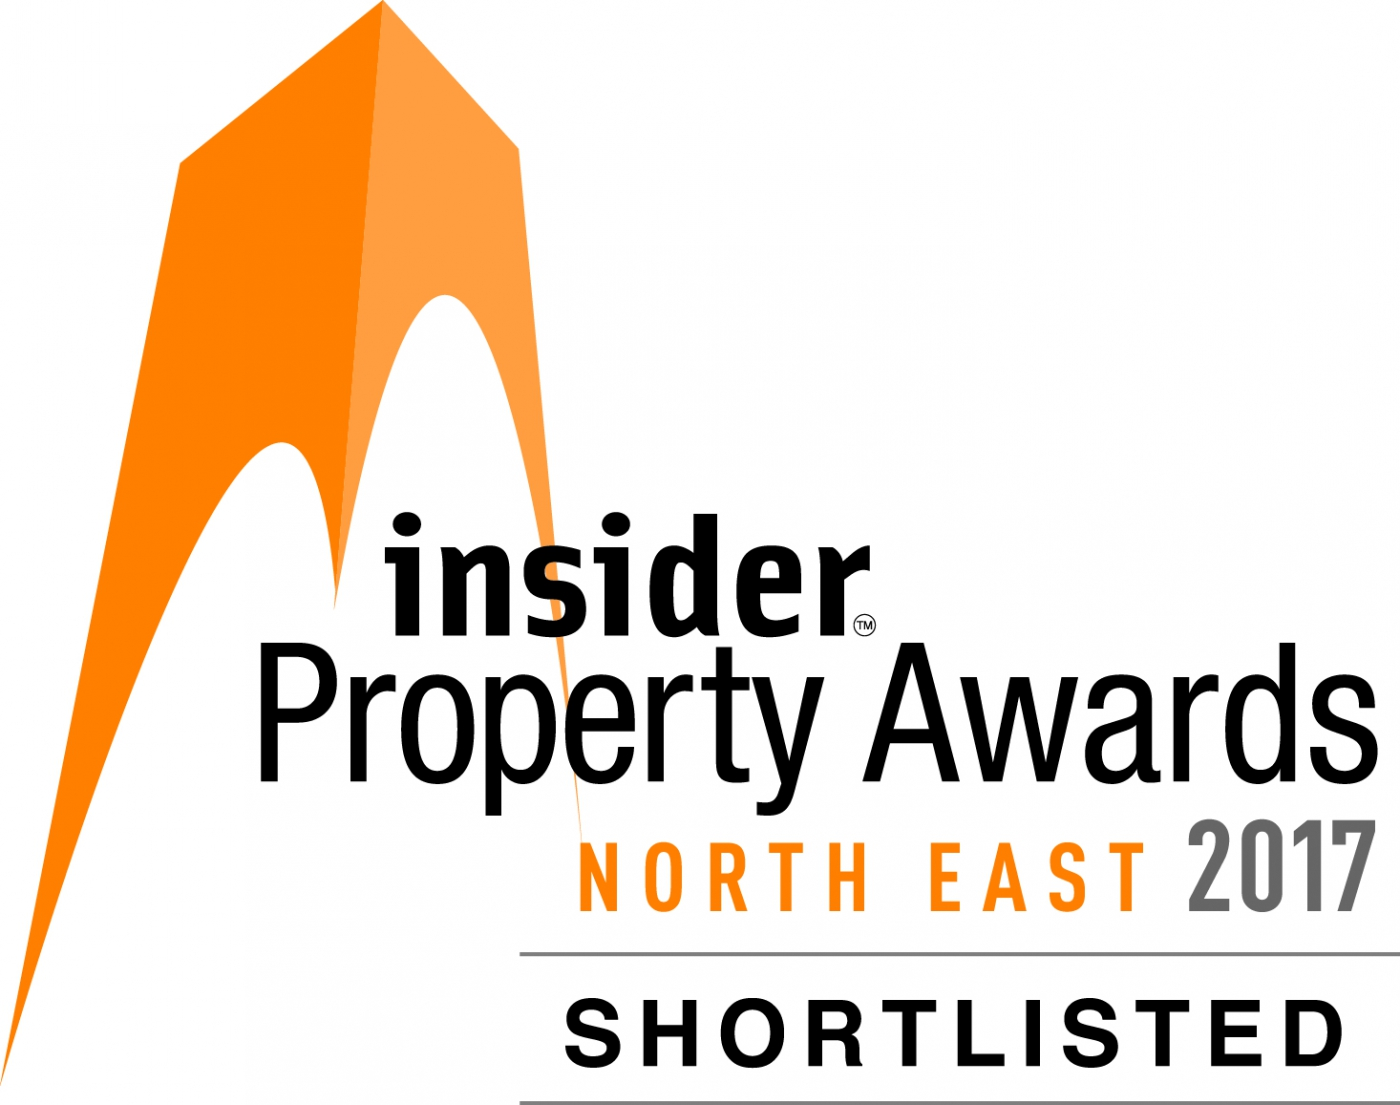 Shortlisted for NE Architectural Practice of the Year